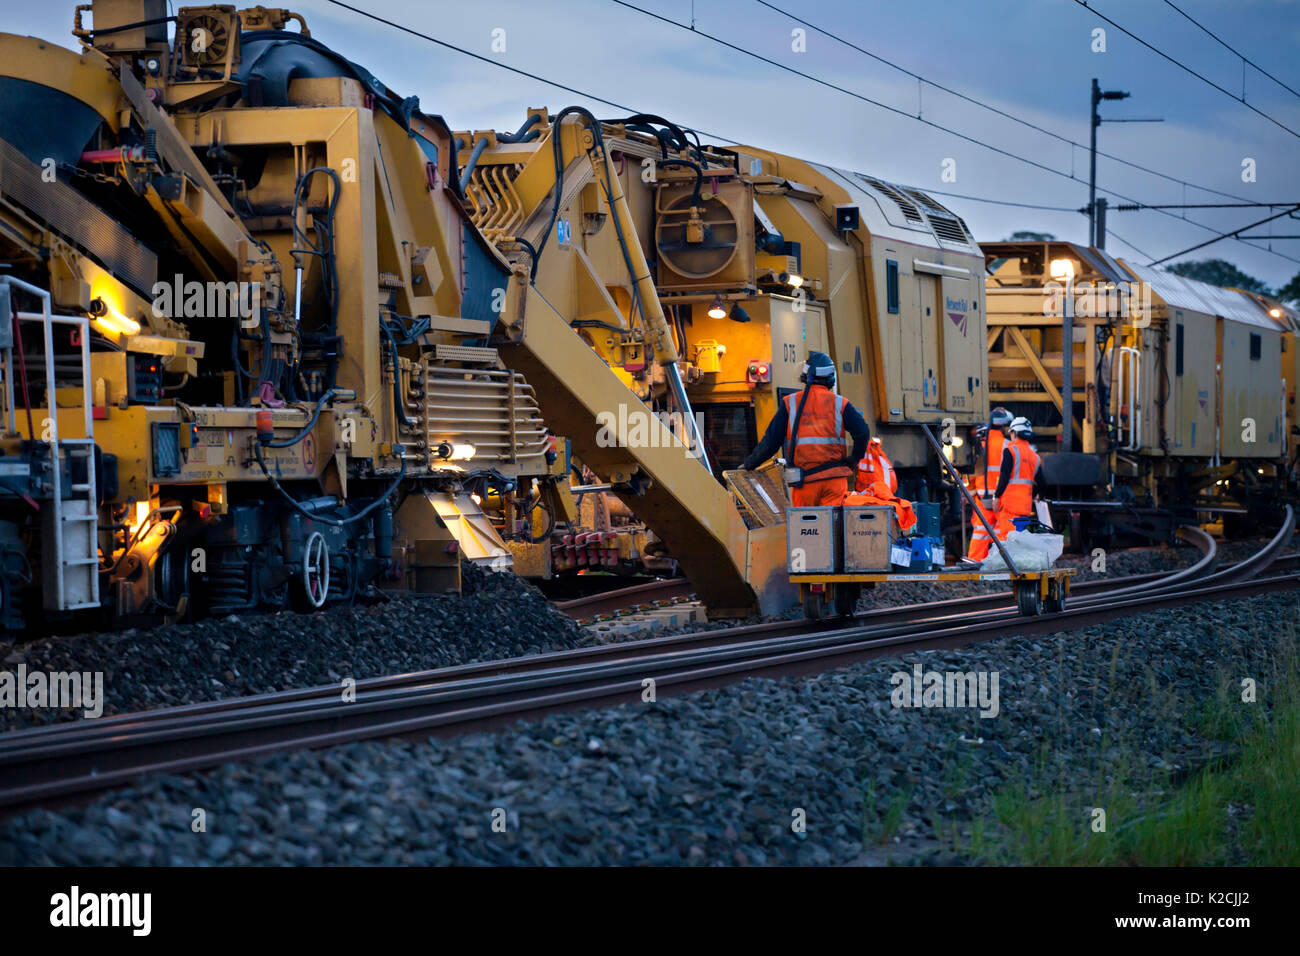 Workmen waiting for rails to be welded before completing last piece of relaying with a Matisia  track renewal train on the West Coast main line - Stock Image